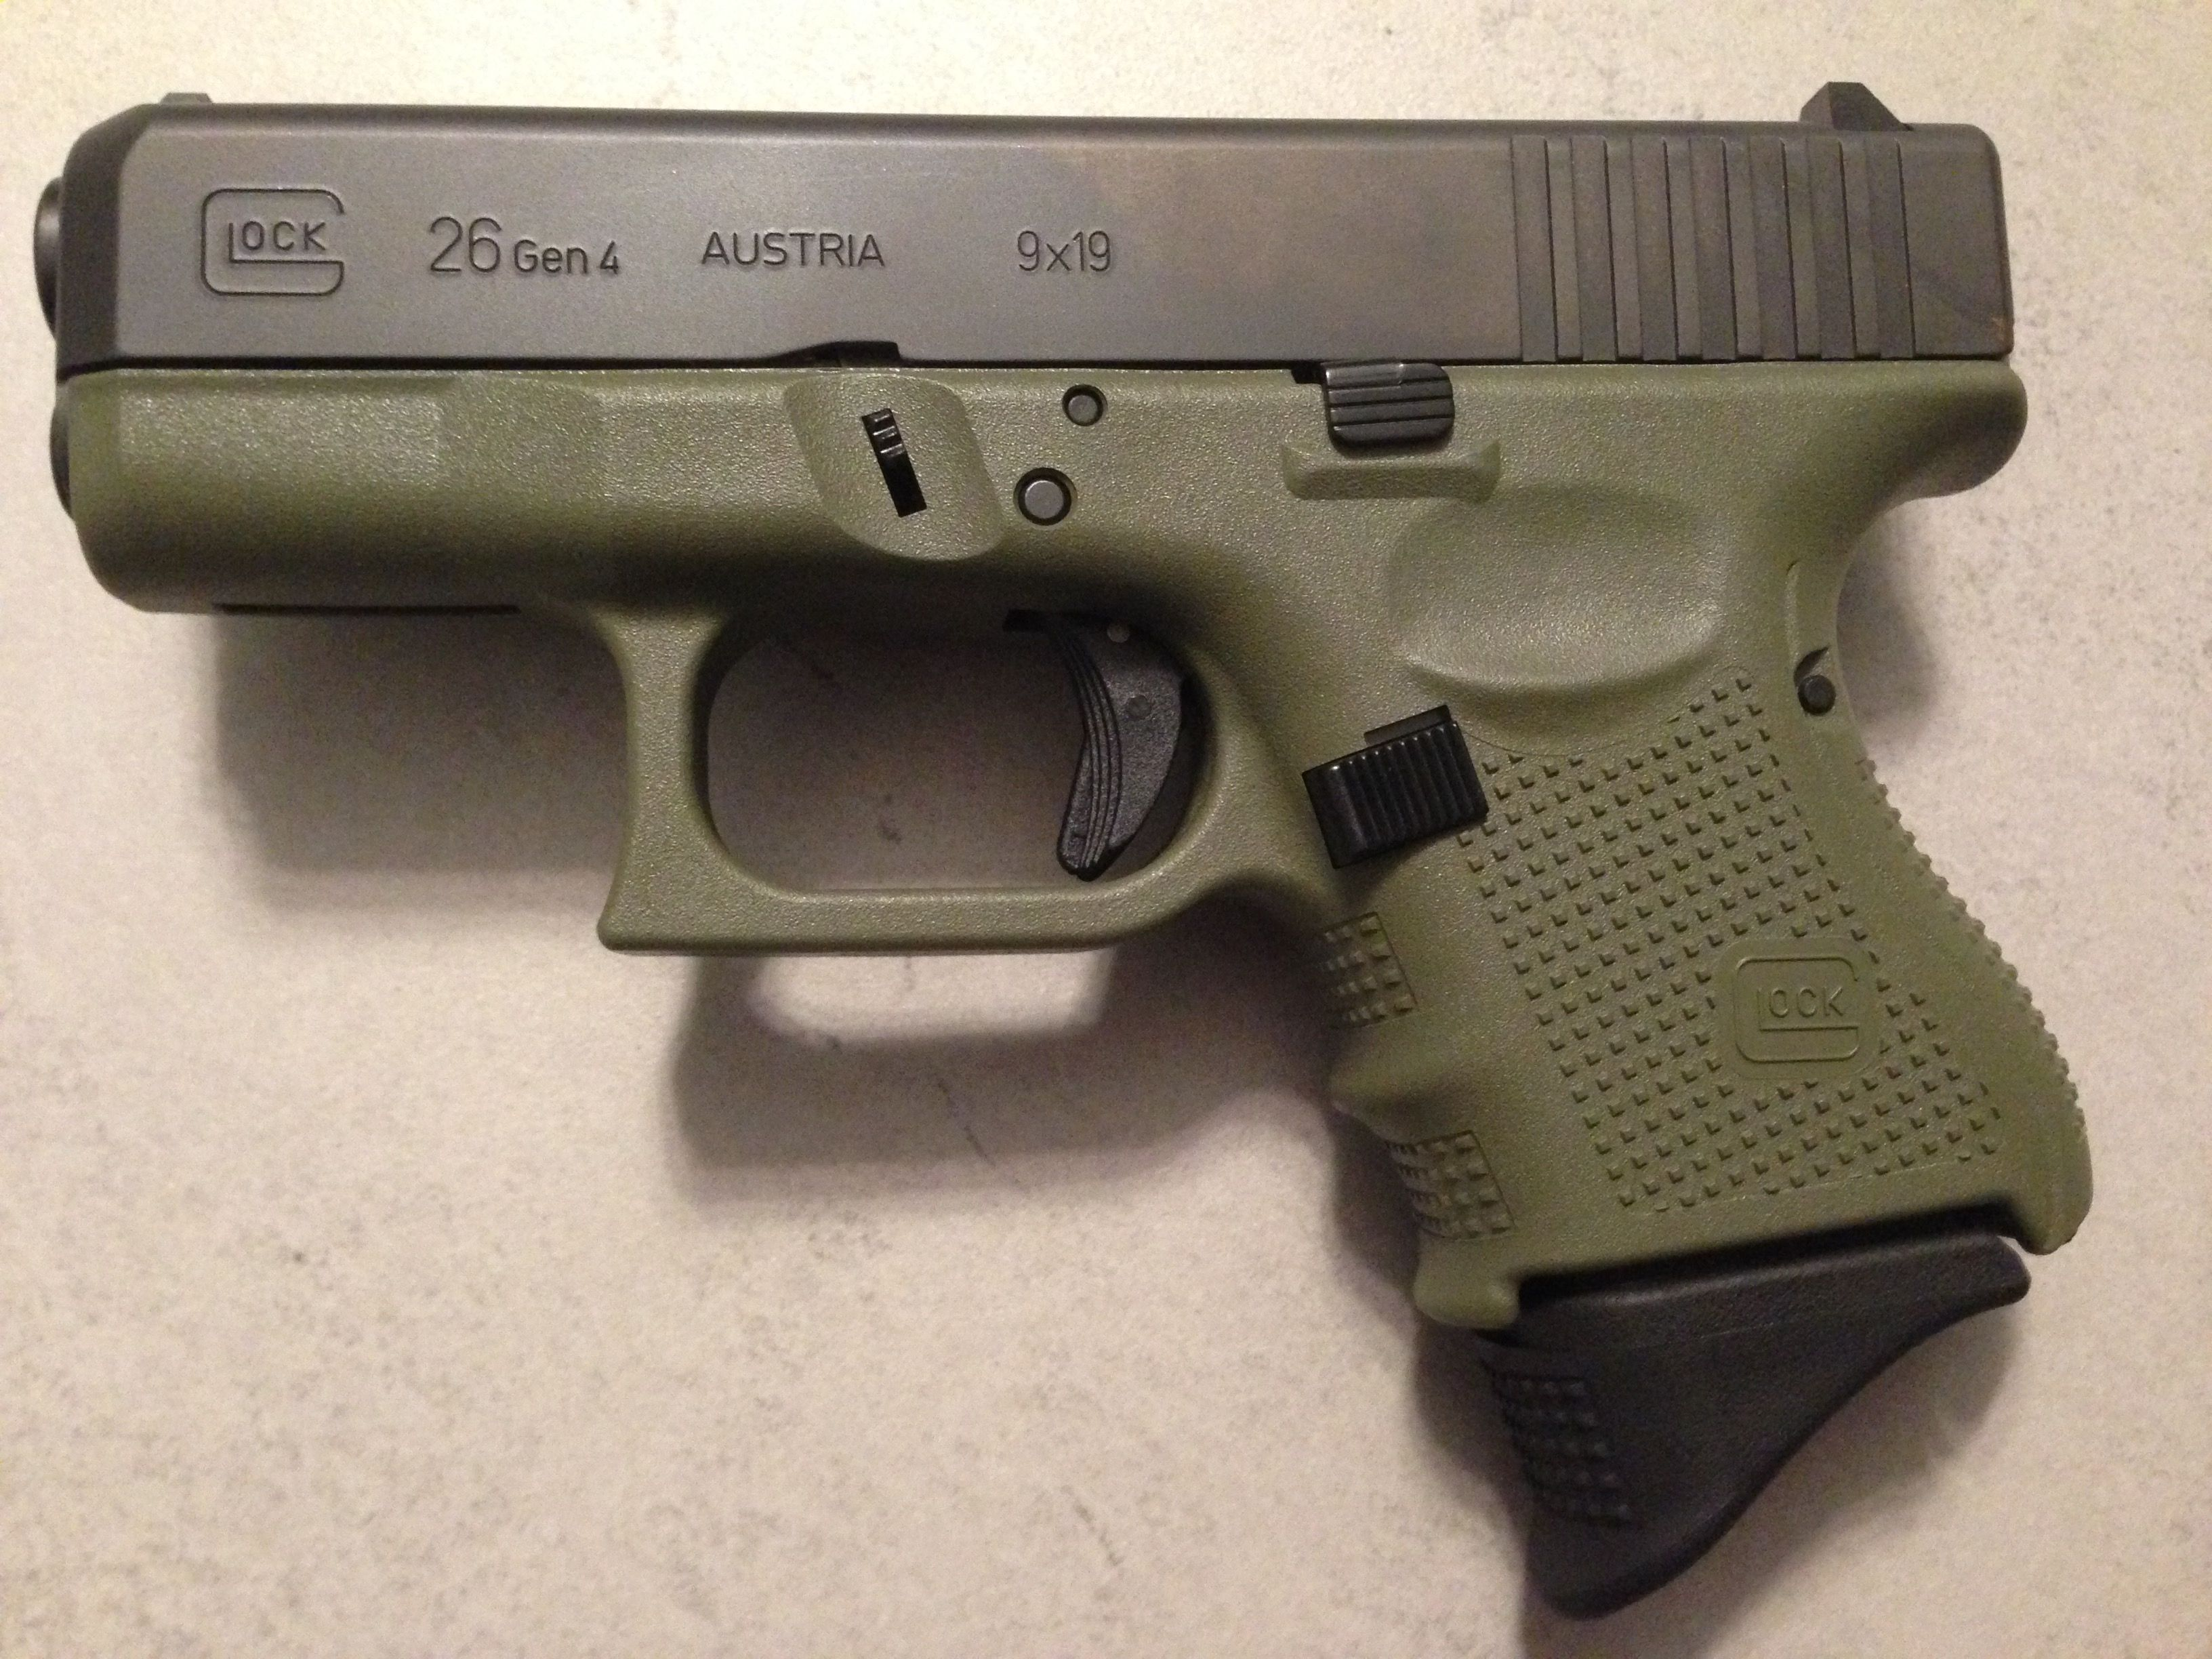 Glock 26 Gen4 BFG Find our speedloader now! www.raeind.com ...